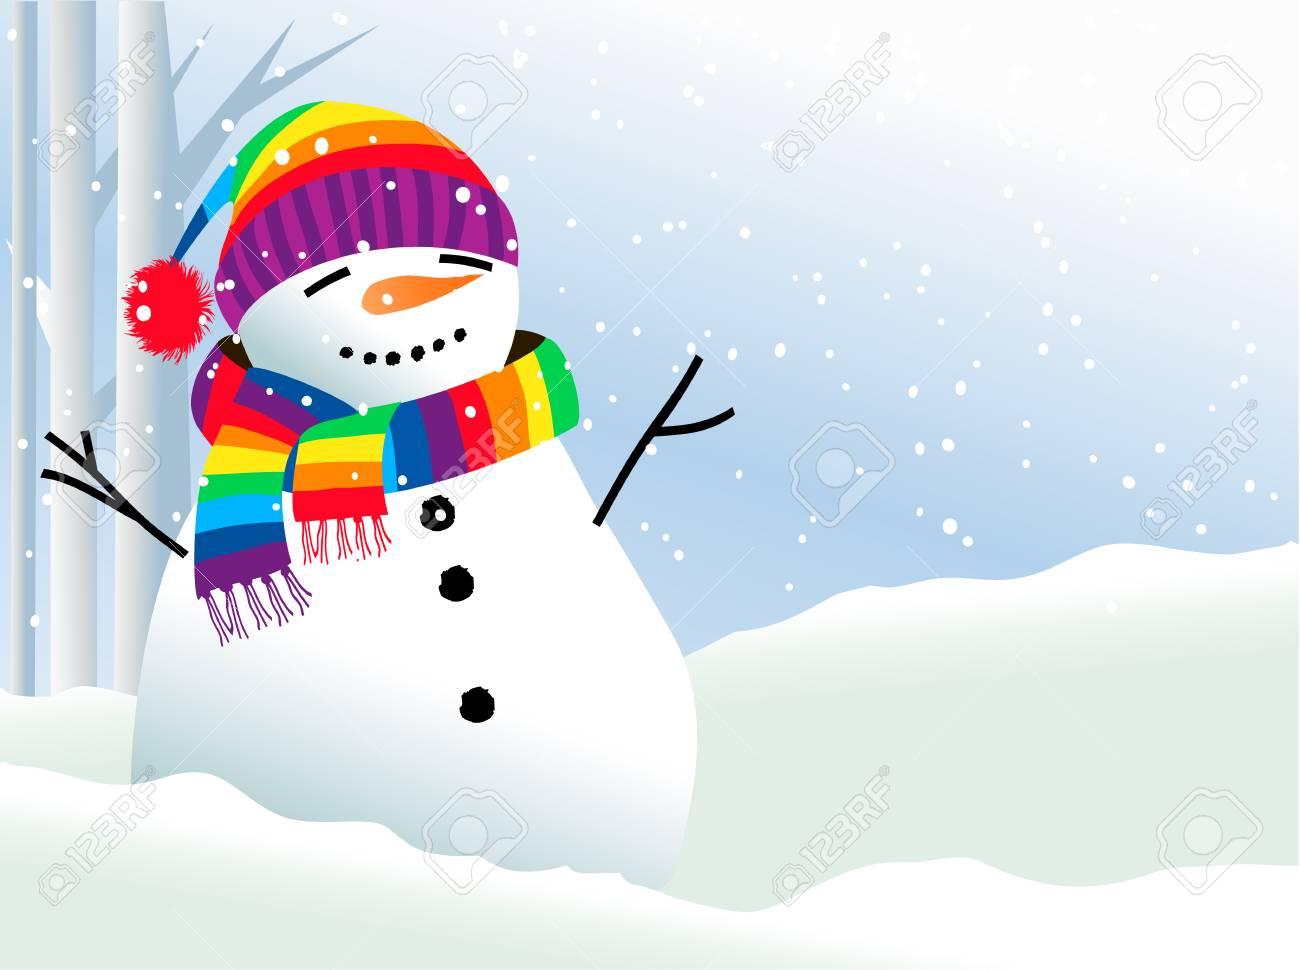 Christmas background with snowman in rainbow scarf - 110587977